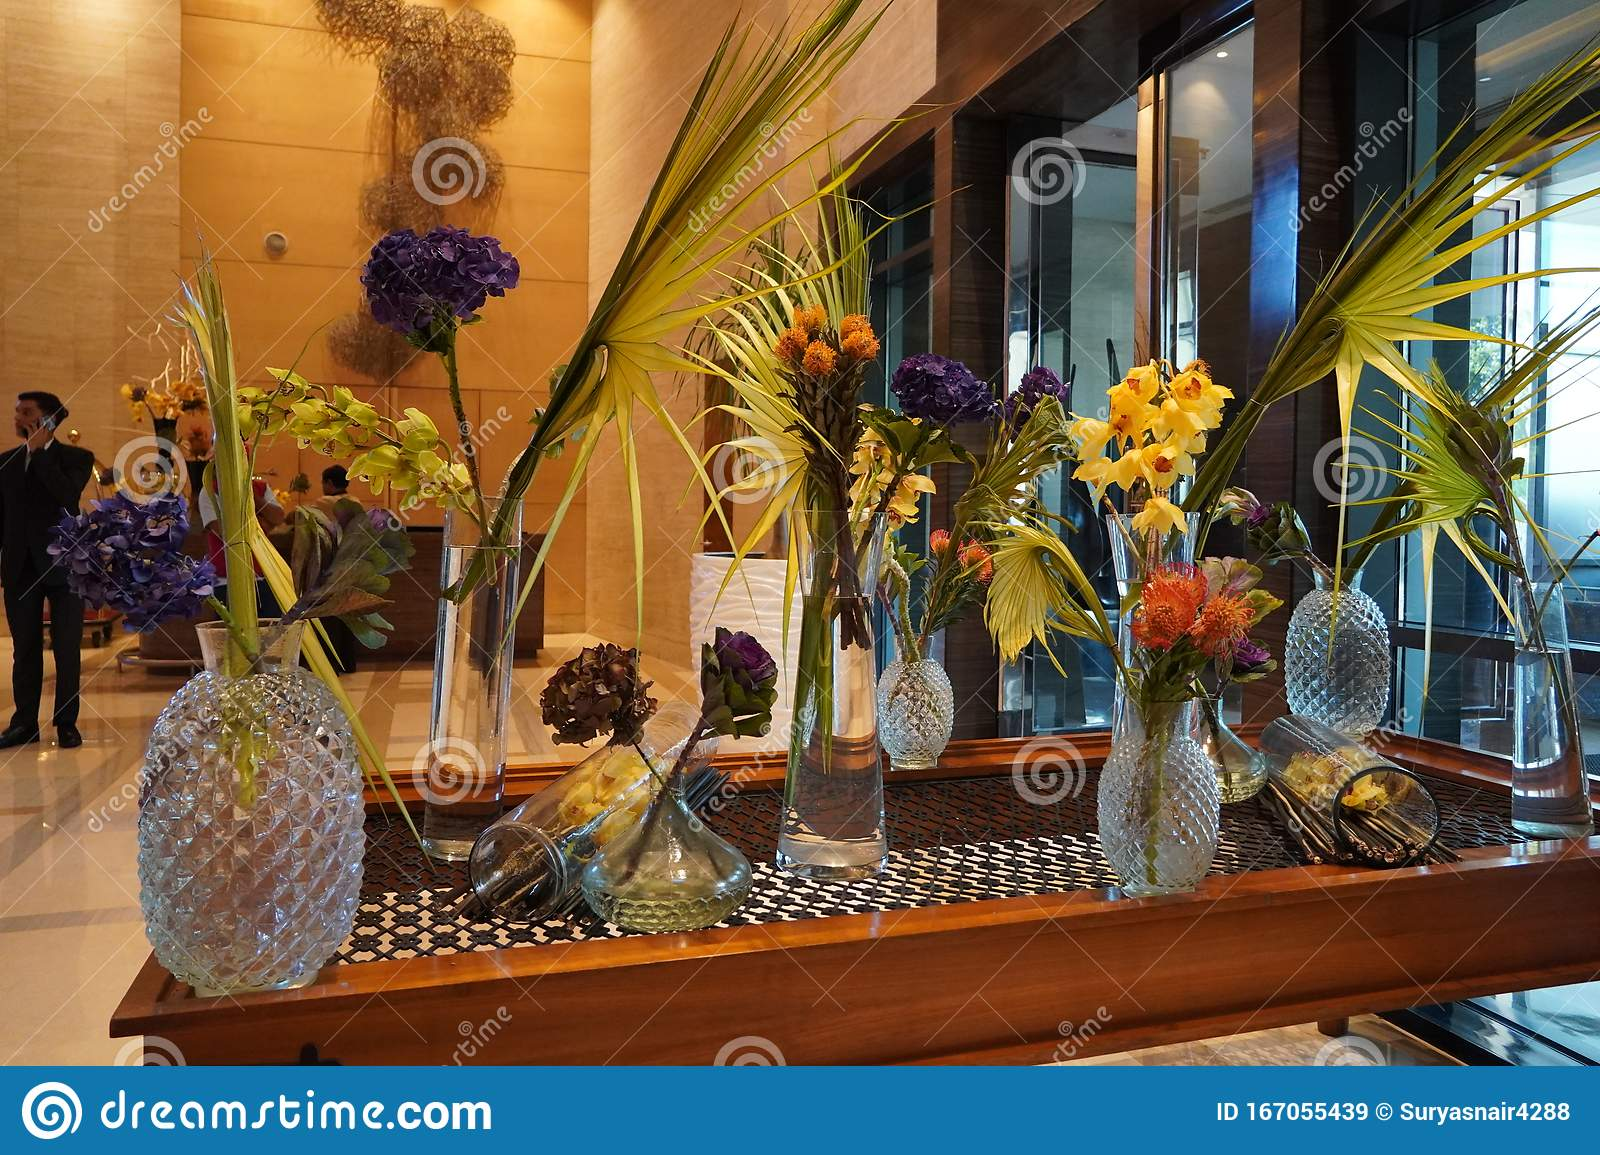 Beautifully Arranged Flowers In Flower Glass Pots On The Table Elegant Flowers Arrangement In Vases In Hotel Lobby Flower Editorial Stock Image Image Of Flora Flower 167055439